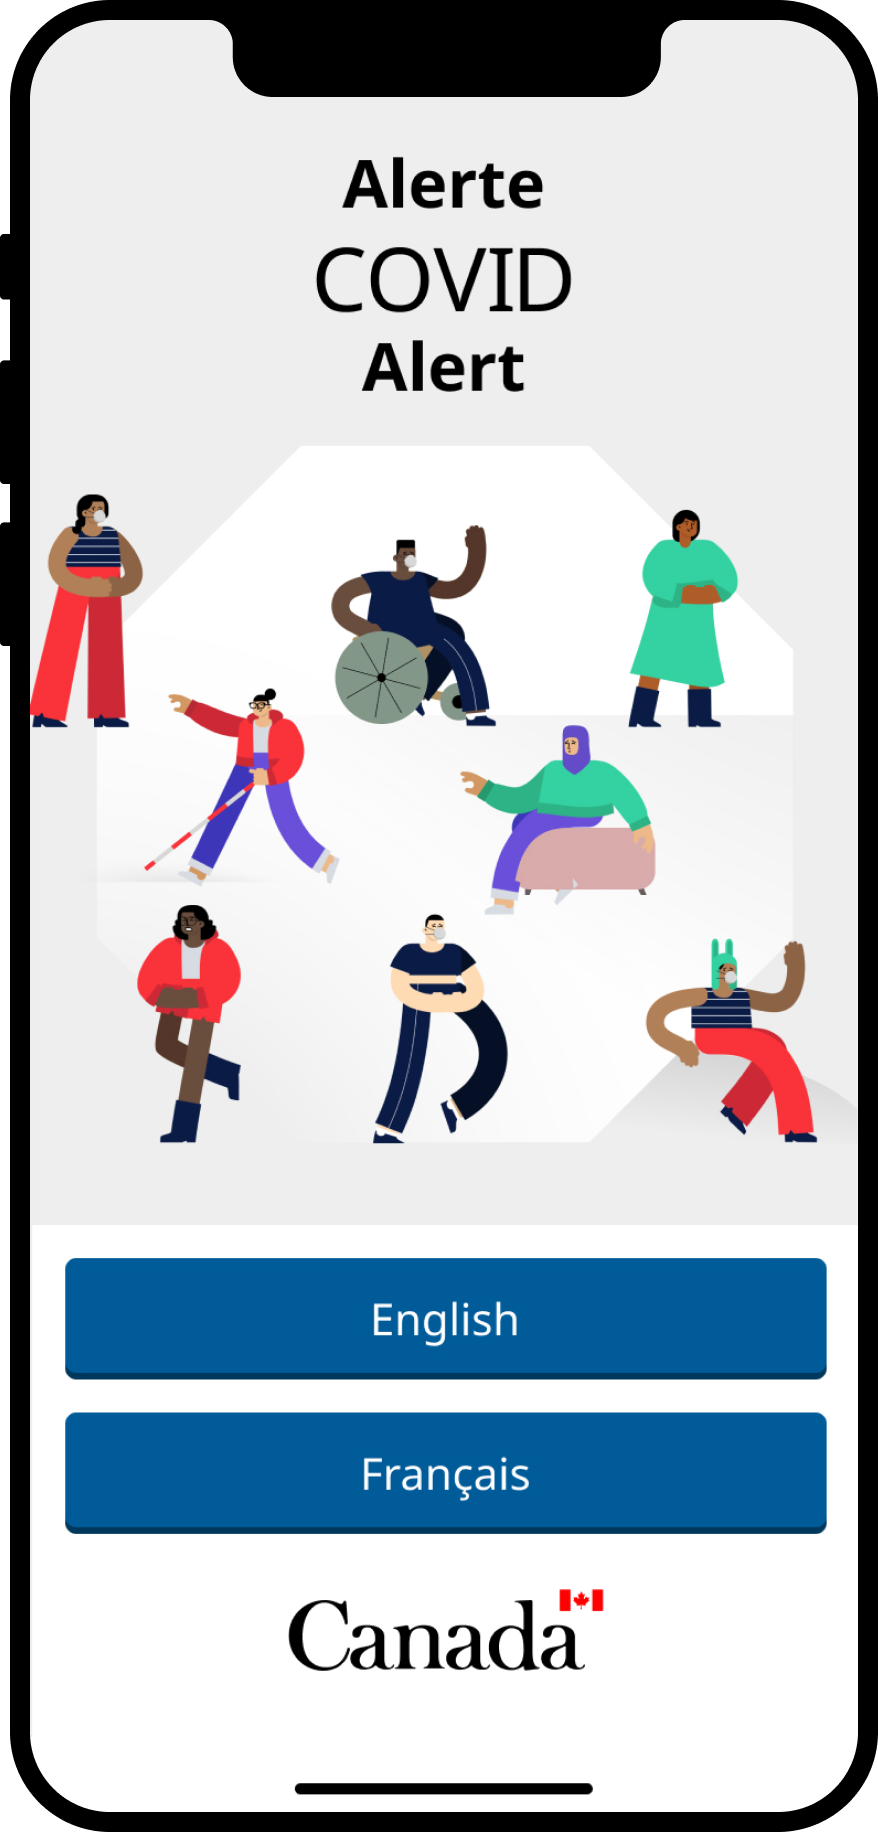 Screenshot of the COVID Alert start page in an iPhone frame. Includes an illustration of 8 people enjoying a public space and the option to choose English or French for the app language.